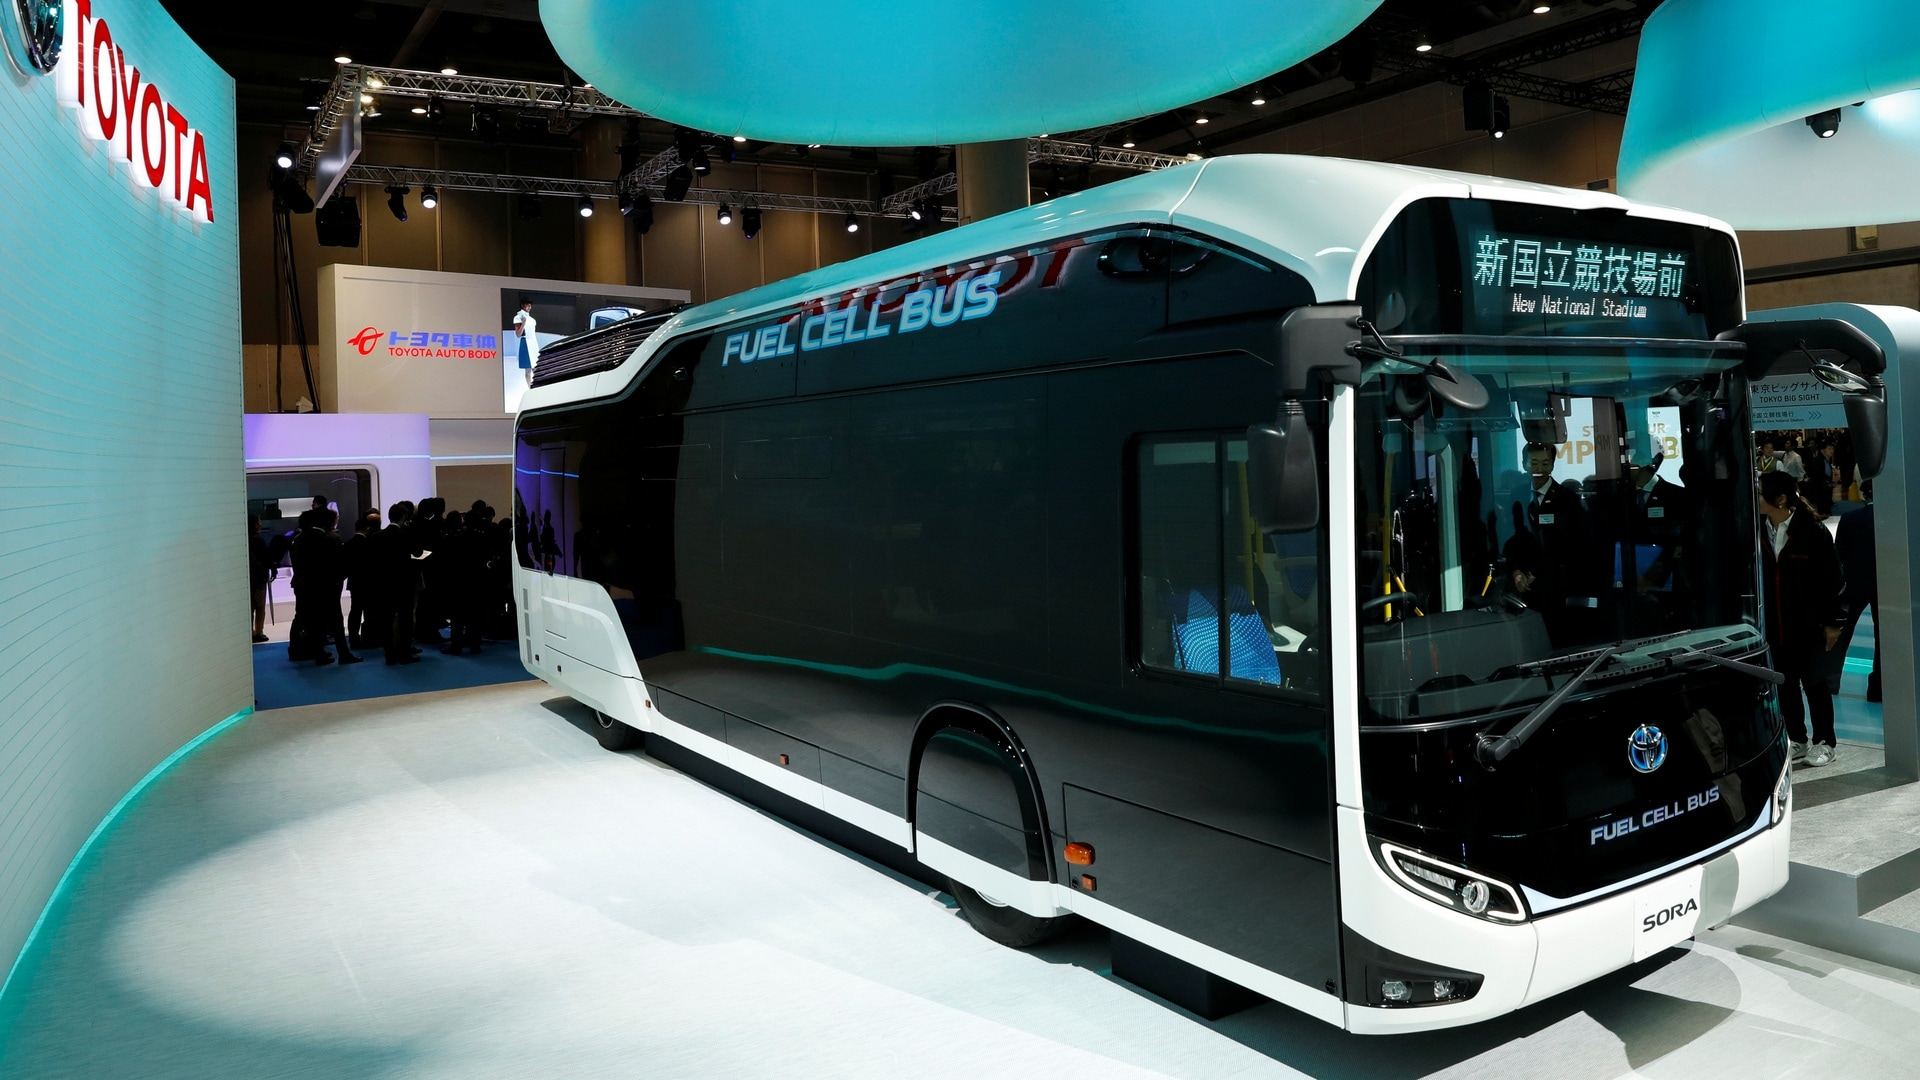 Fuel cell bus Sora is displayed by Toyota during media preview of the 45th Tokyo Motor Show in Japan on October 25, 2017. Reuters